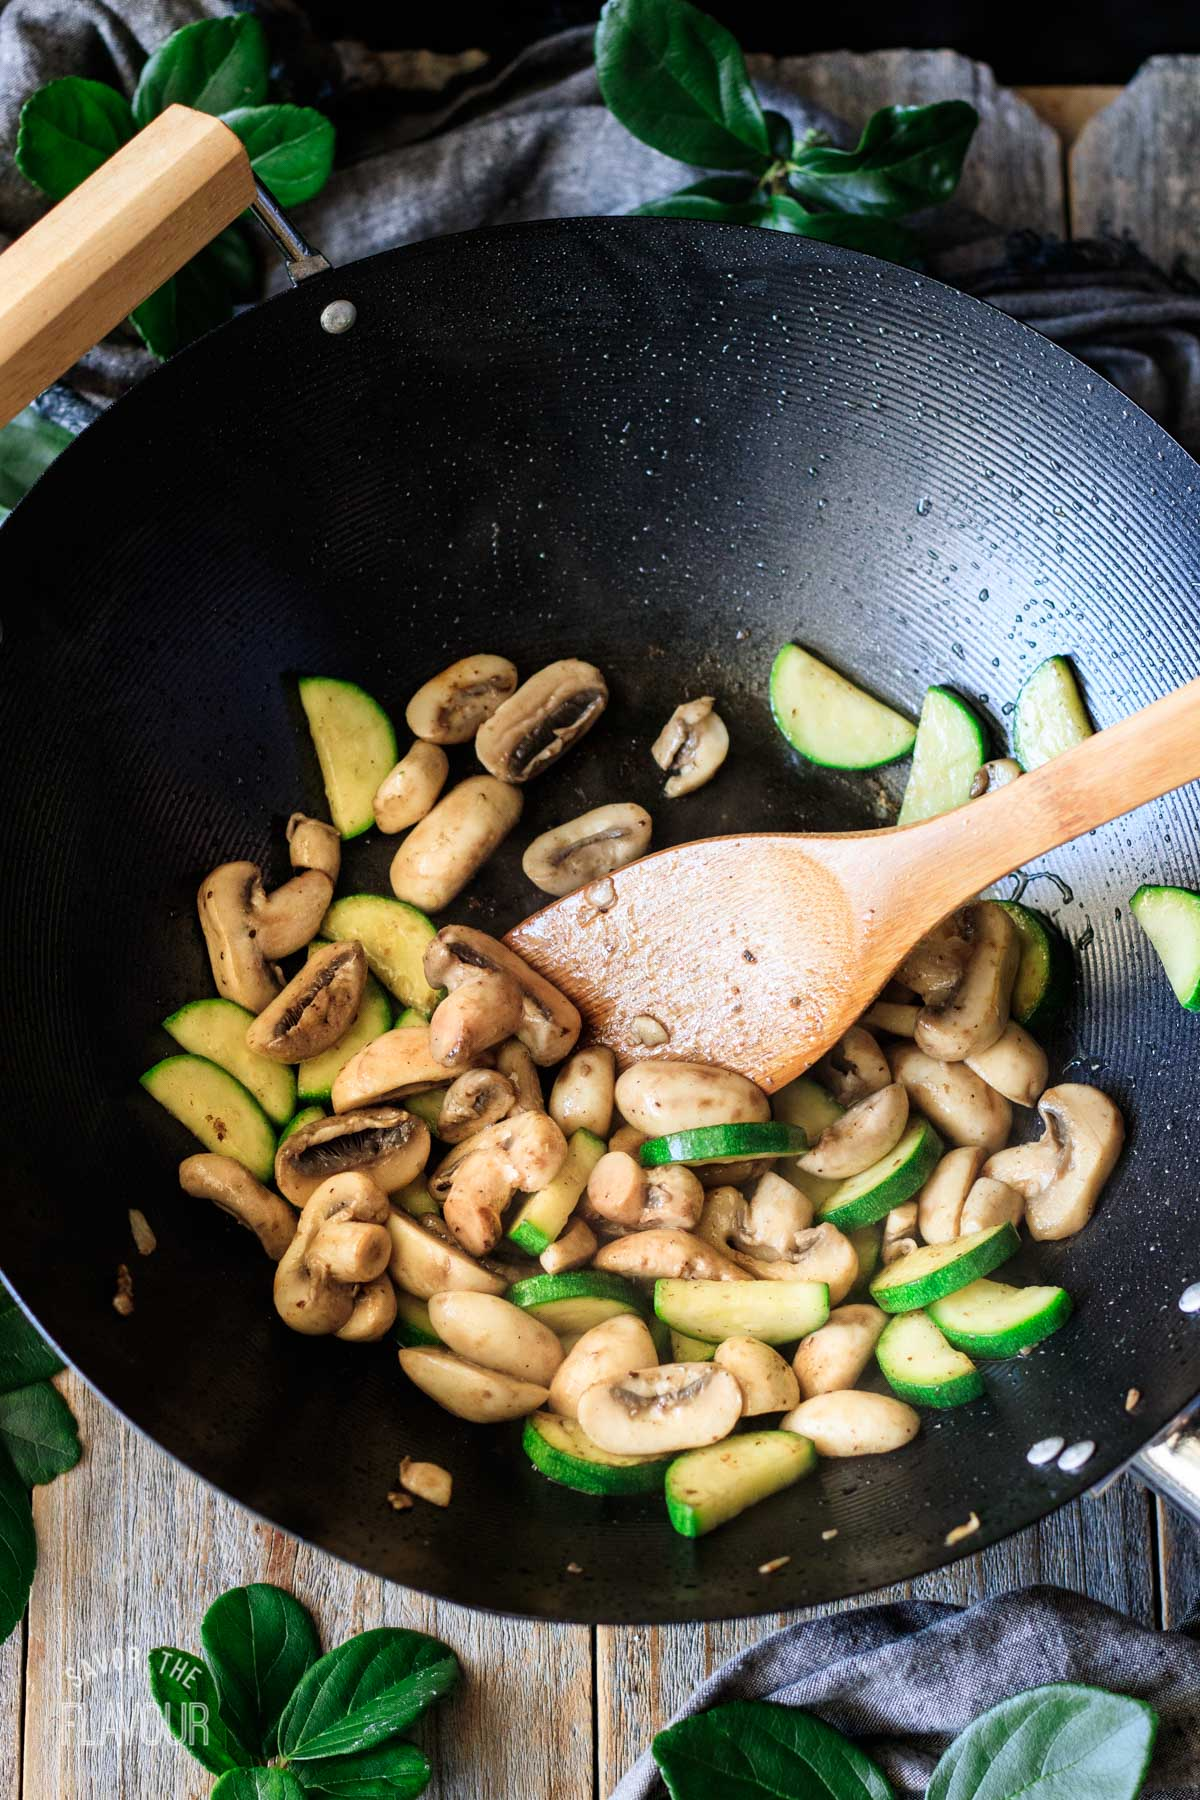 stir fried zucchini and mushrooms in a wok with a bamboo spoon